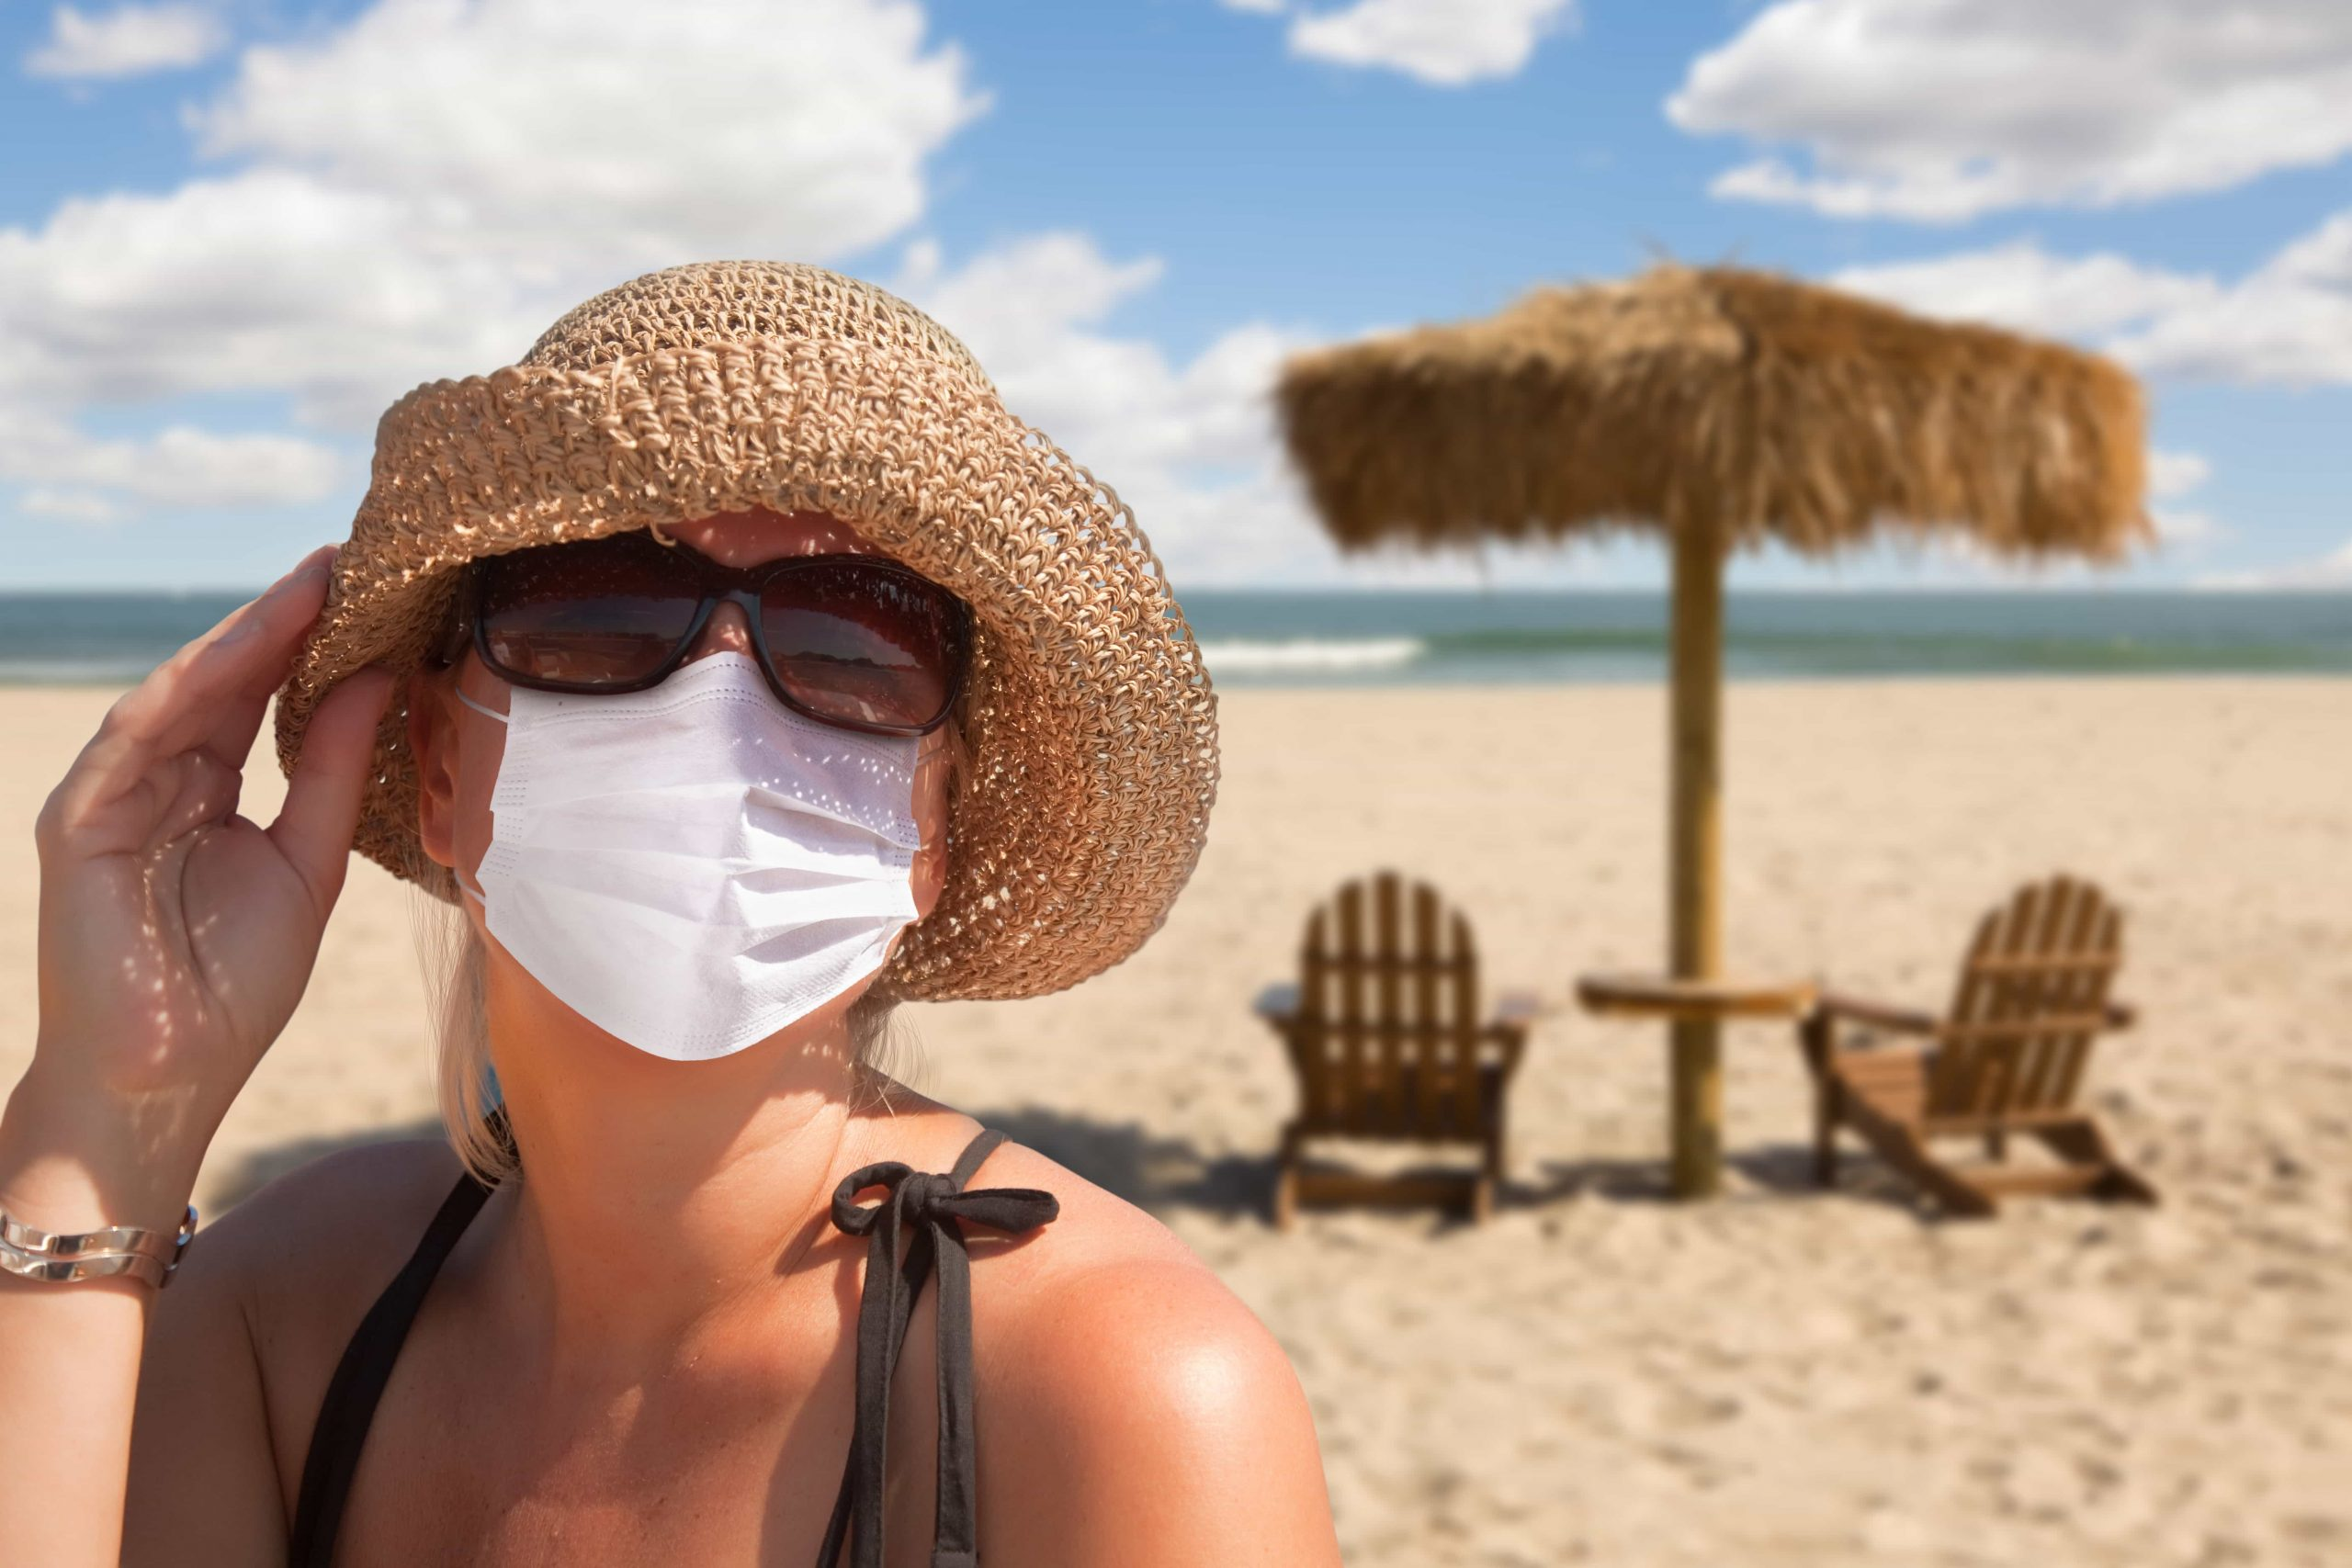 Young woman on a beach wearing a hat and a protective mask